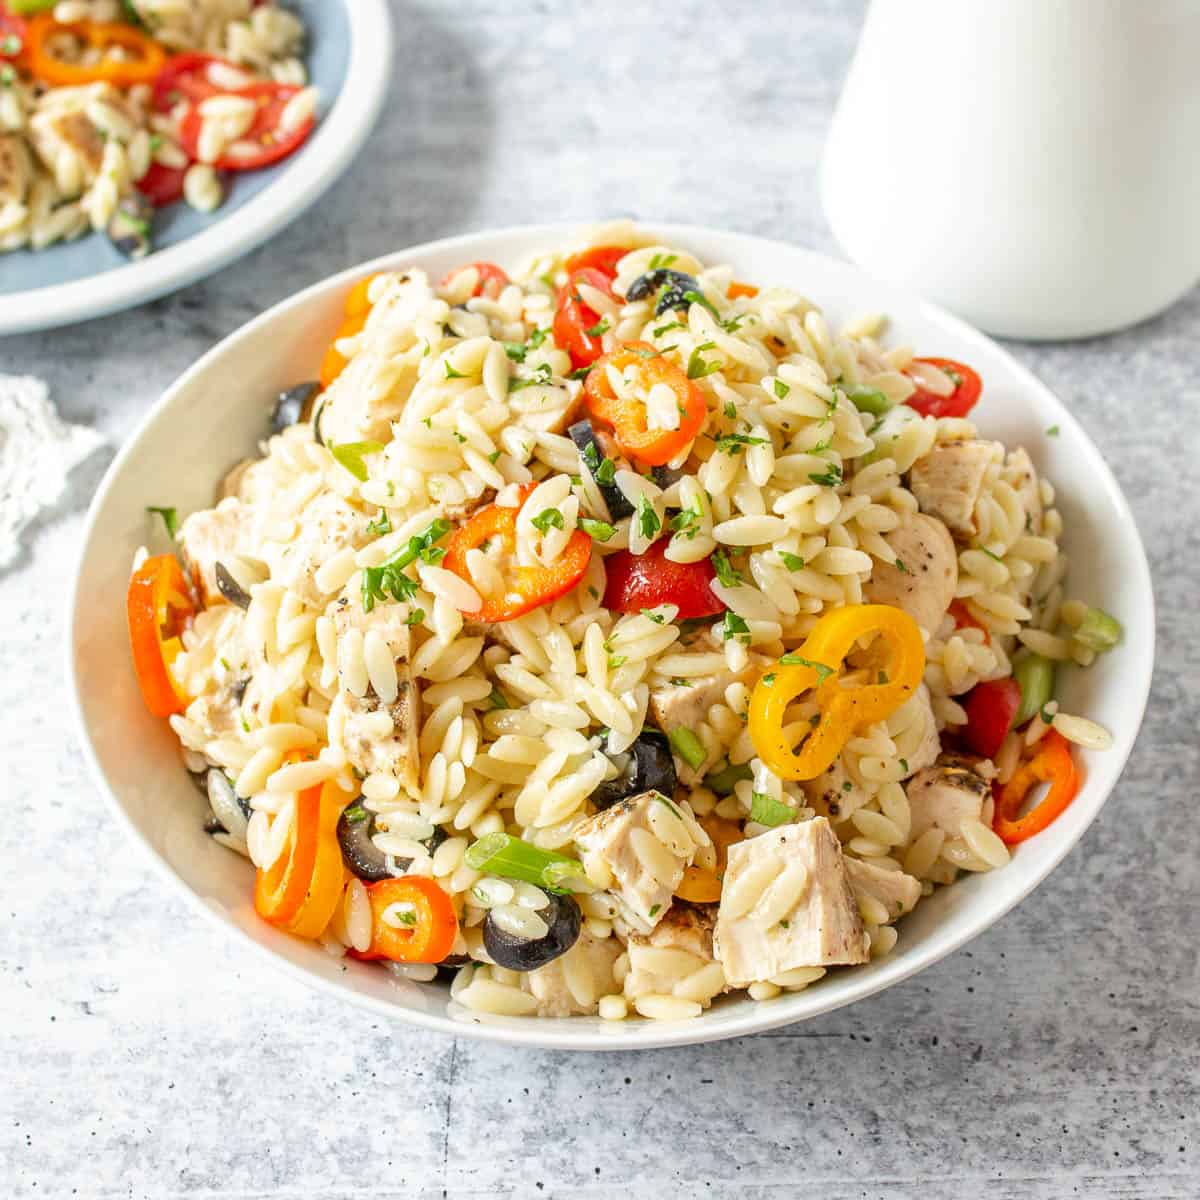 A bowl filled with orzo pasta, sliced tomatoes and chunks of chicken.